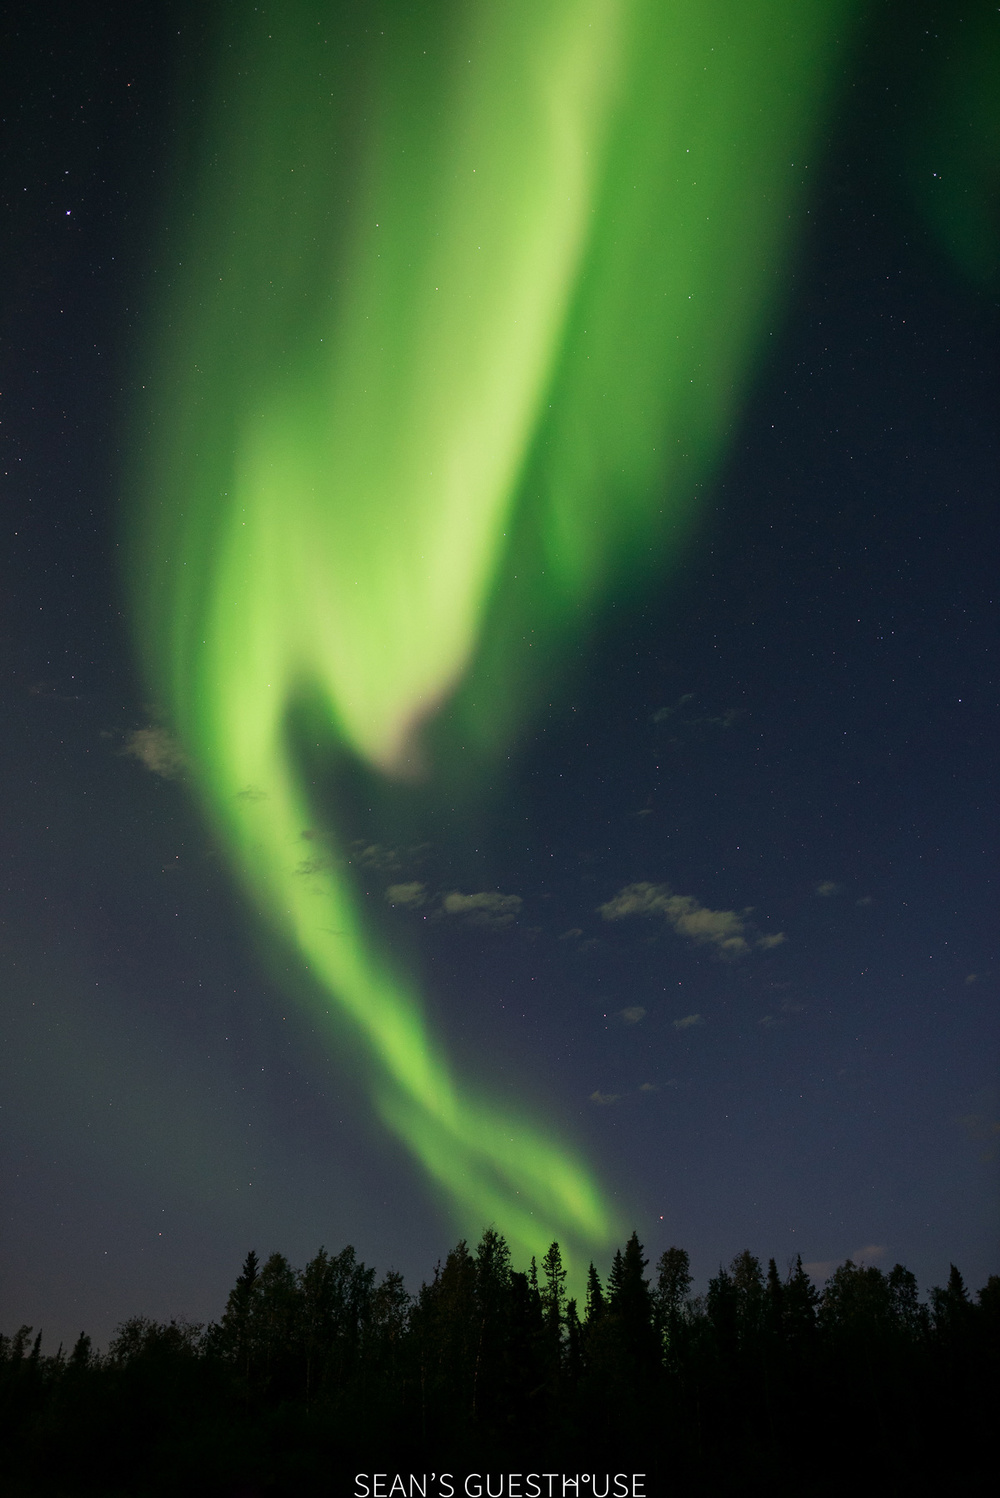 Sean's Guesthouse - Yellowknife Northern Lights Accommodation & Tours - 7.jpg